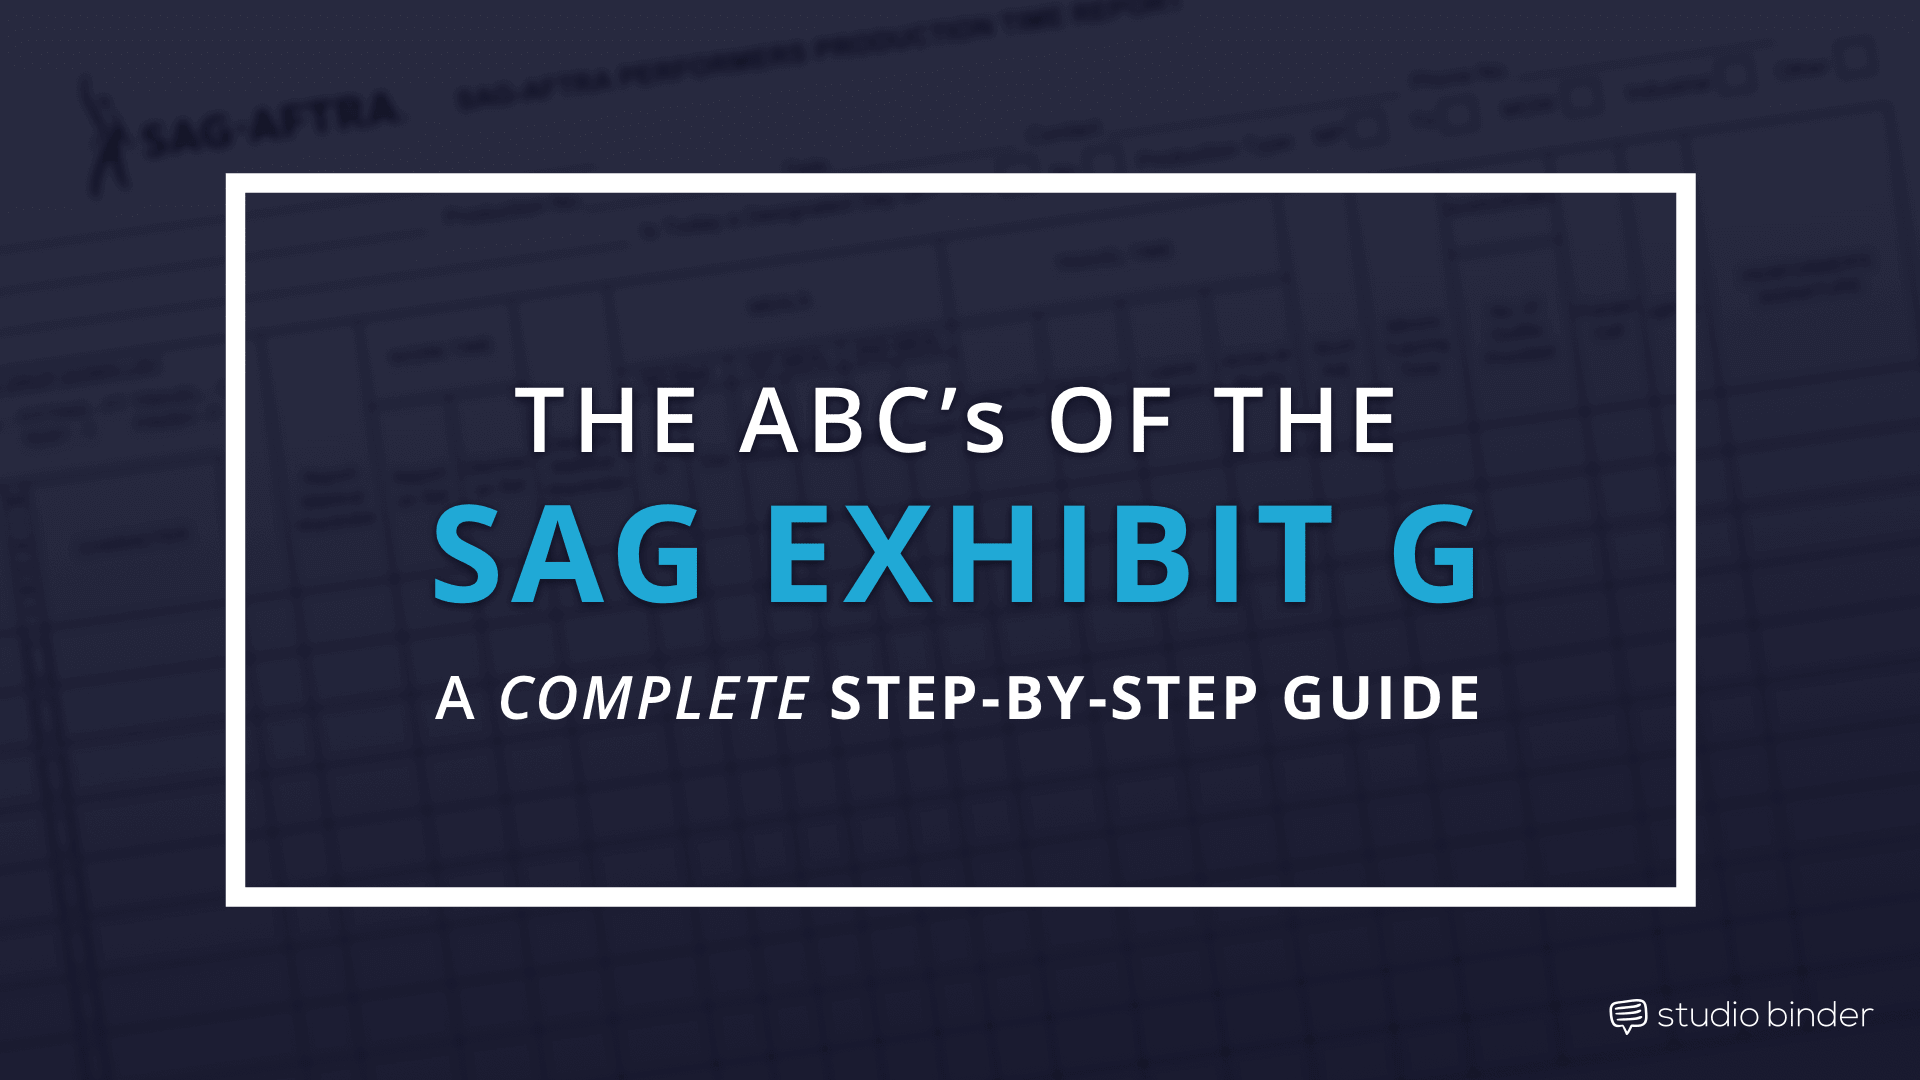 How to Fill Out SAG Exhibit G - A Complete Step-by-Step Guide - StudioBinder - Featured